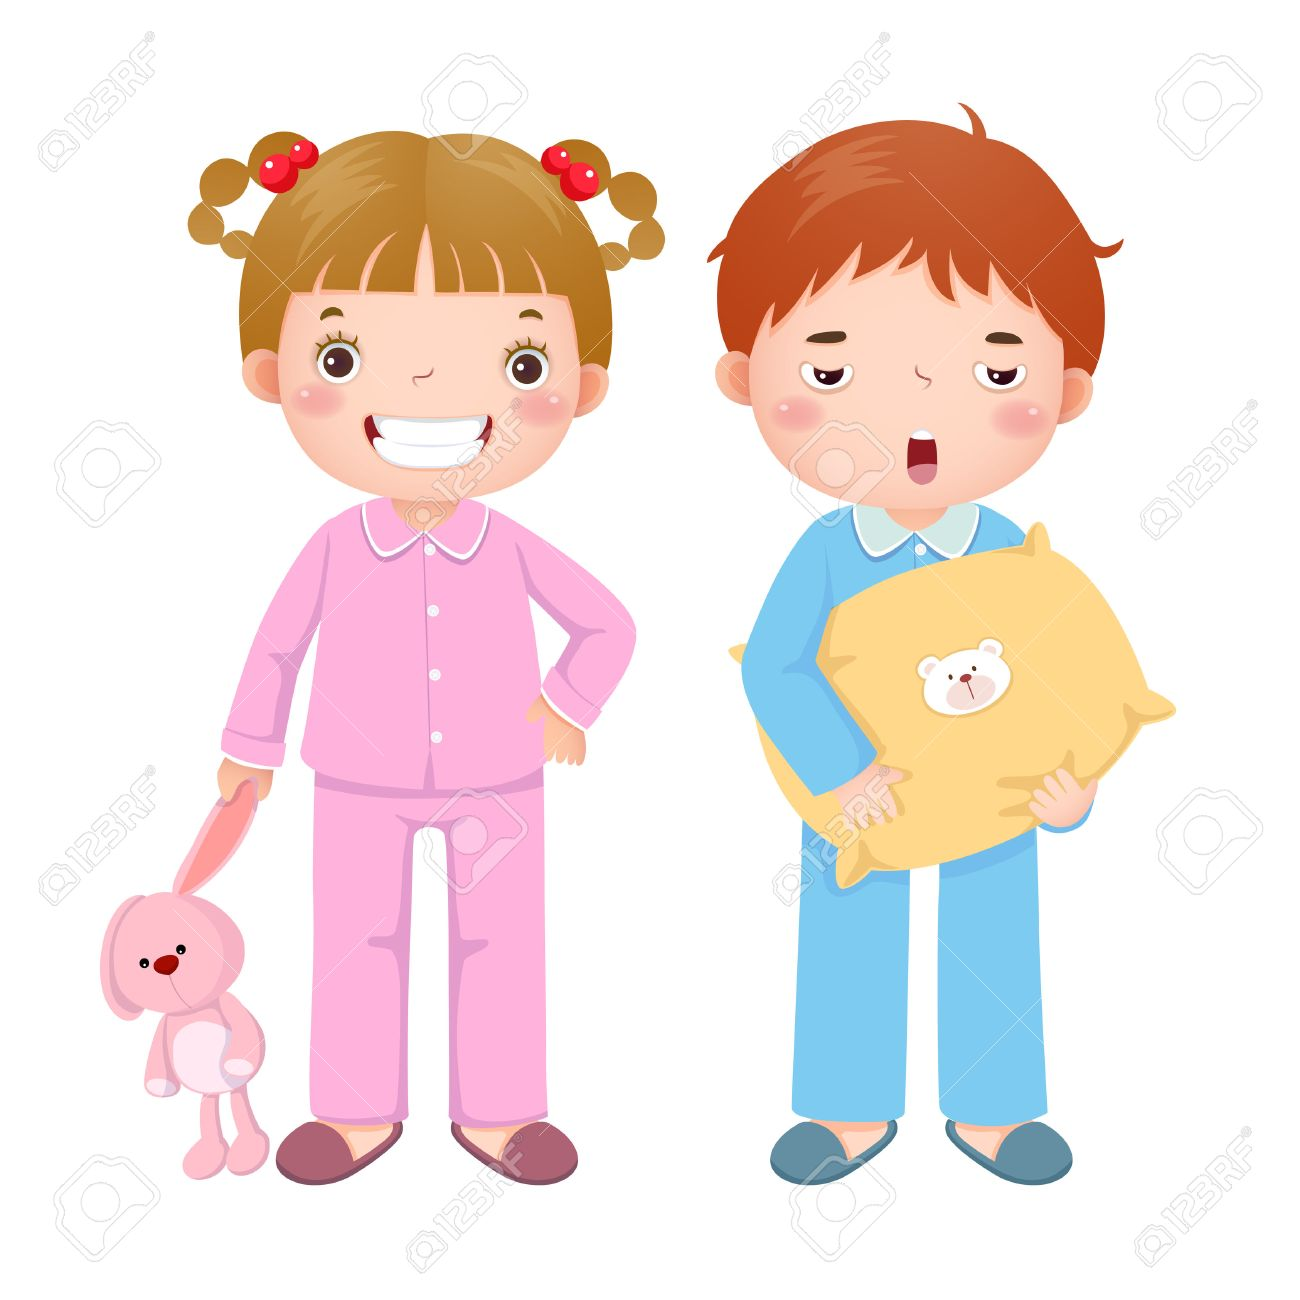 Kids Wearing Pajamas Clipart.